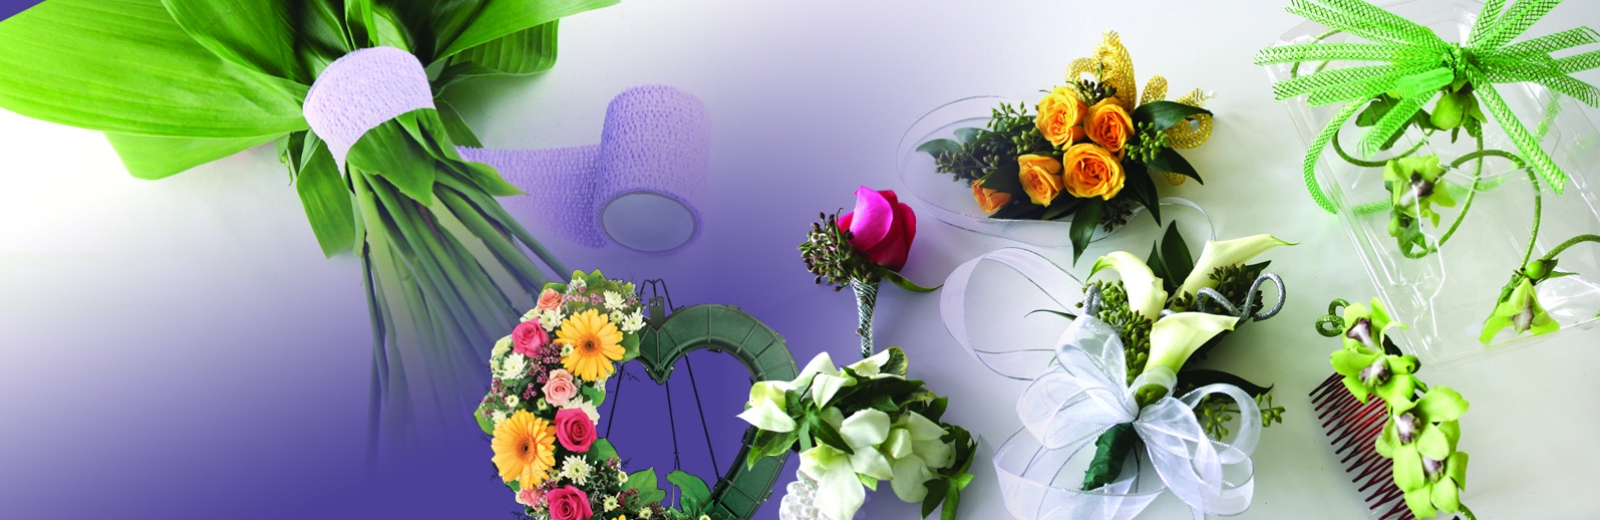 TFS Florist of Roanoke